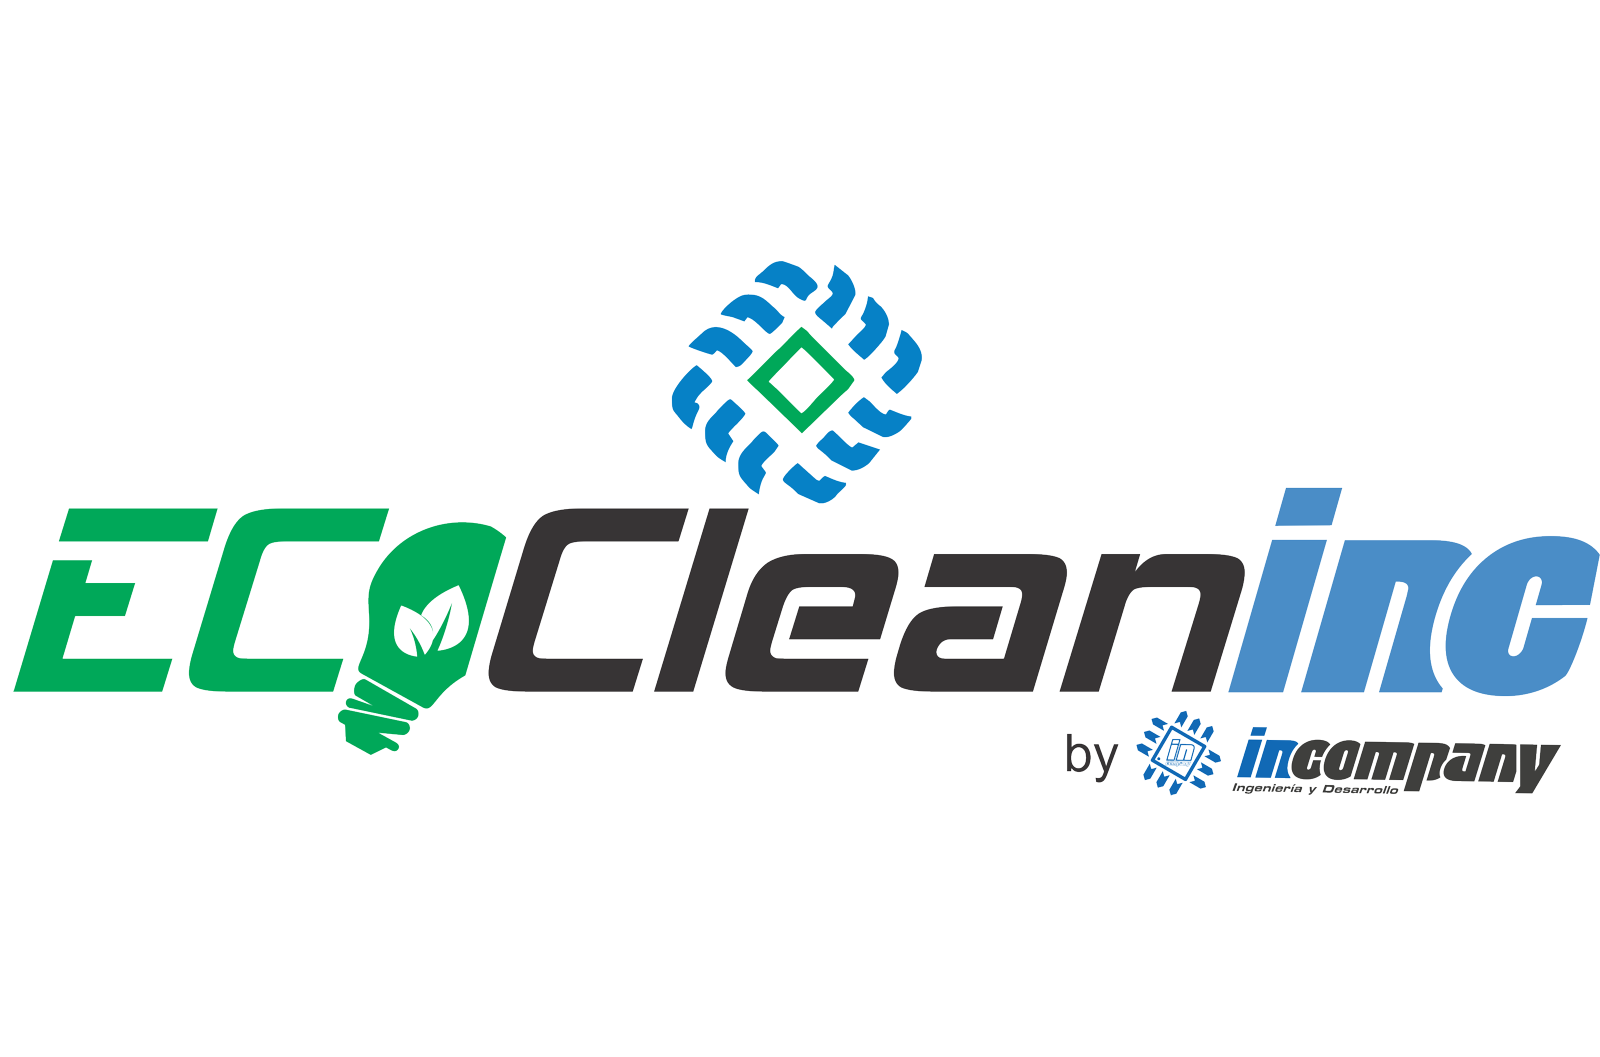 Logo Eco CleanINC by ICN V1.0 230620 X5